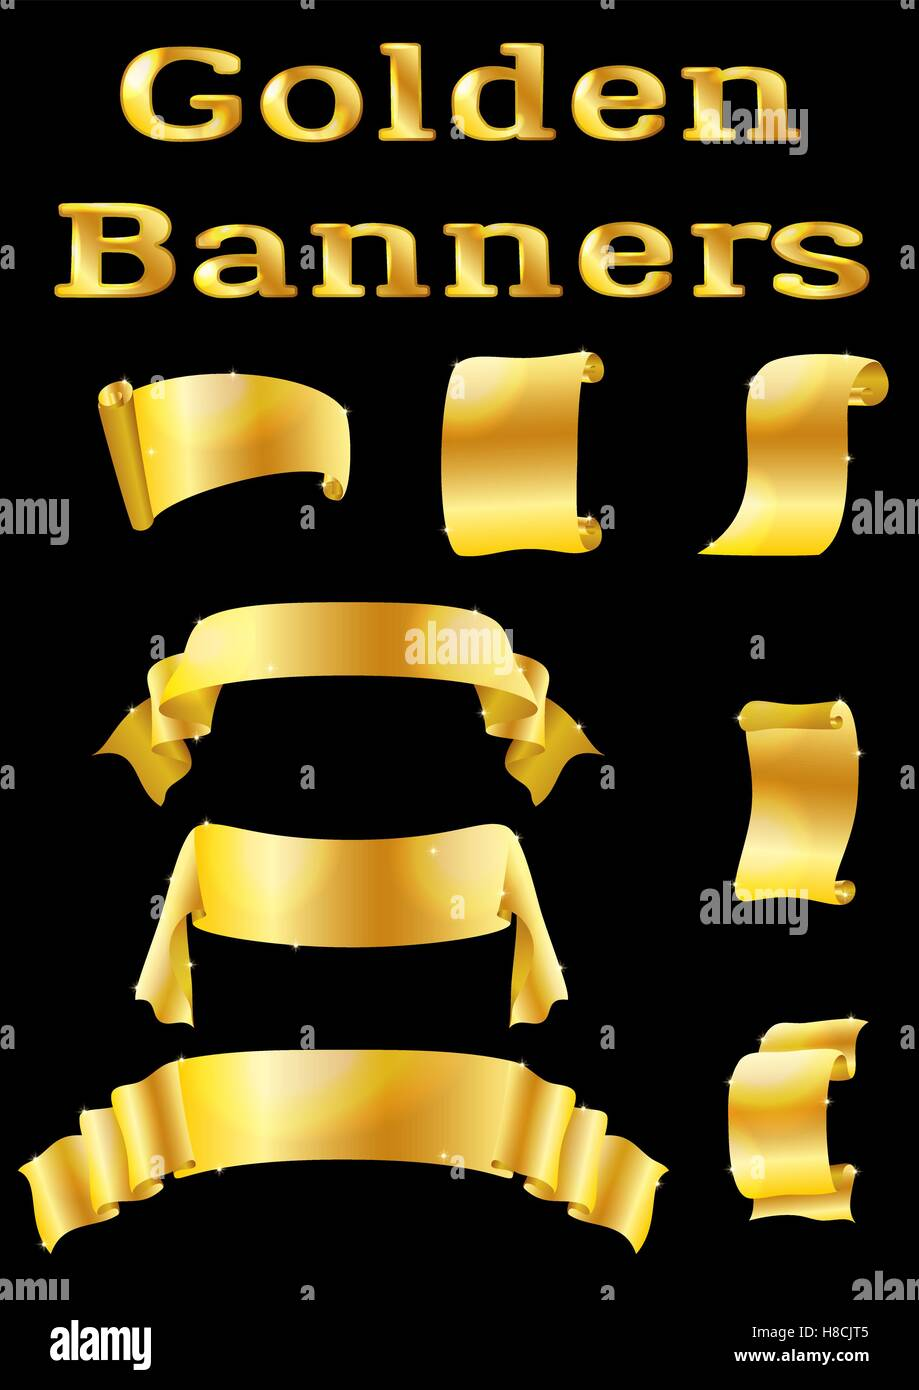 Golden Banners, Set Stock Vector